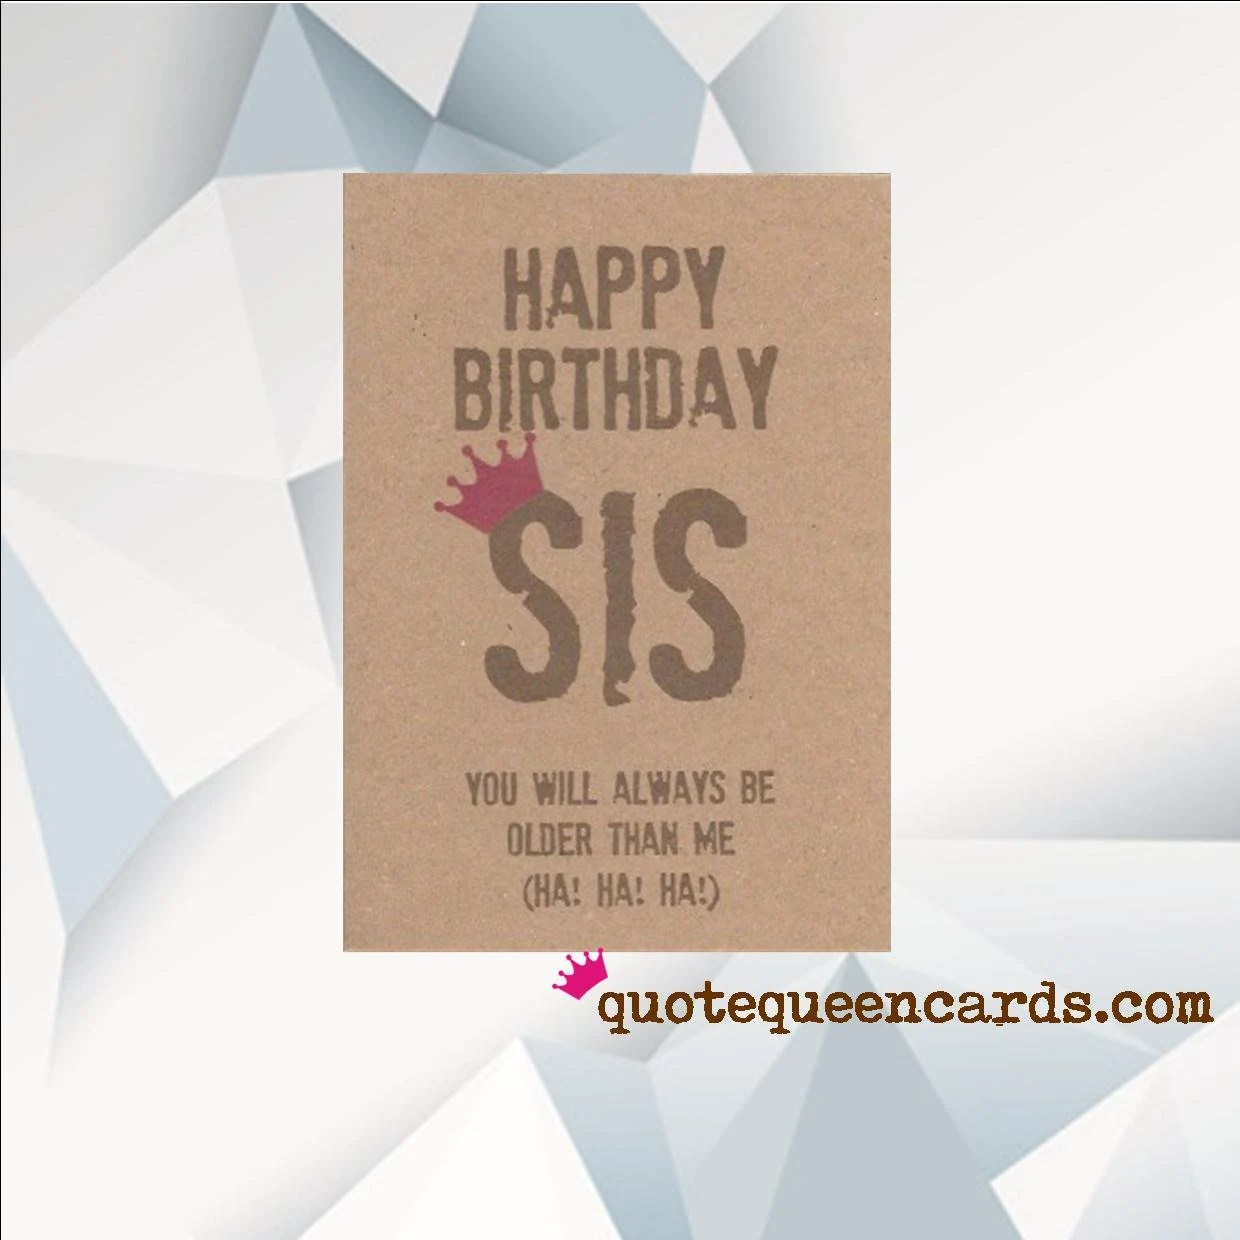 Funny Birthday Card For Sister Happy Birthday Sis You Will Etsy